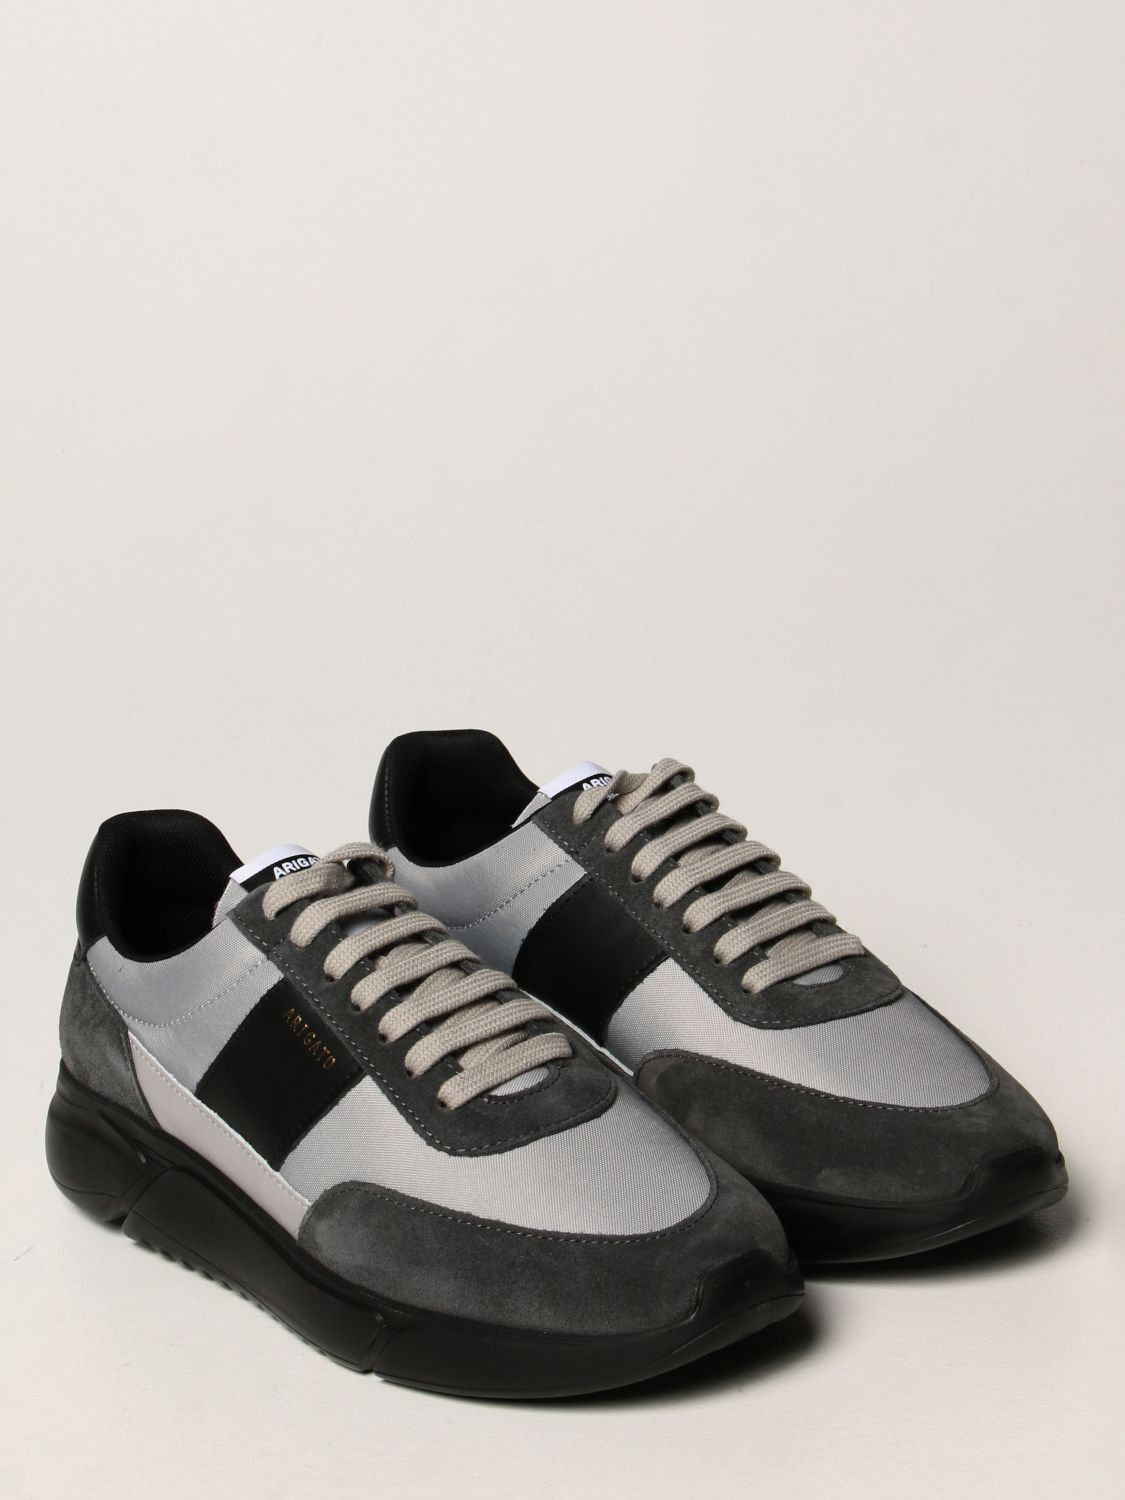 Sneakers Axel Arigato: Axel Arigato sneakers in leather, fabric and suede black 2